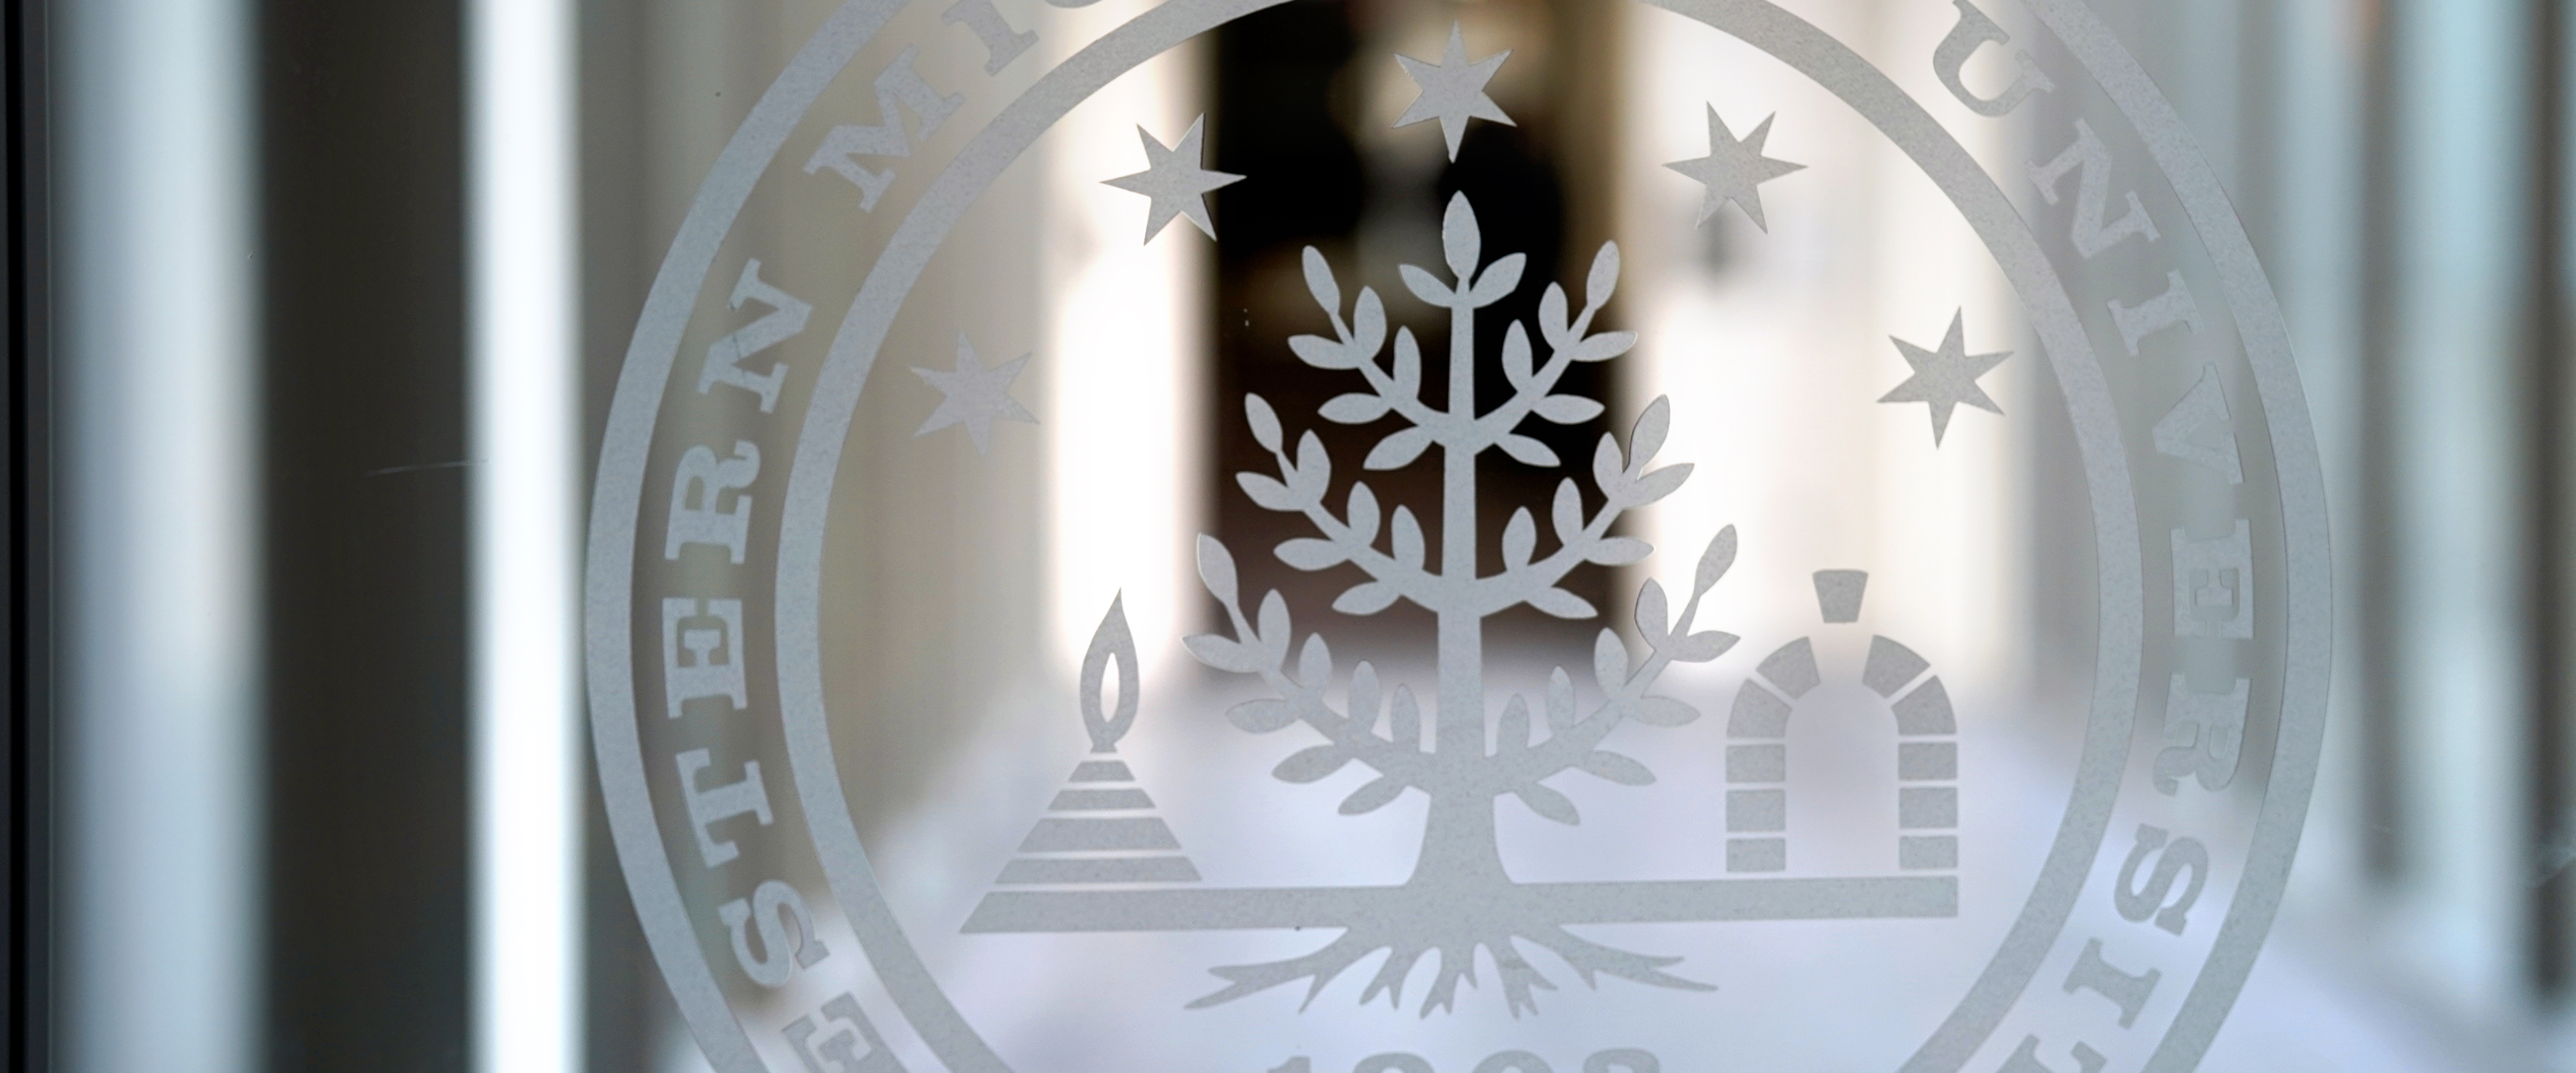 Page banner image: WMU Seal embossed on a glass window